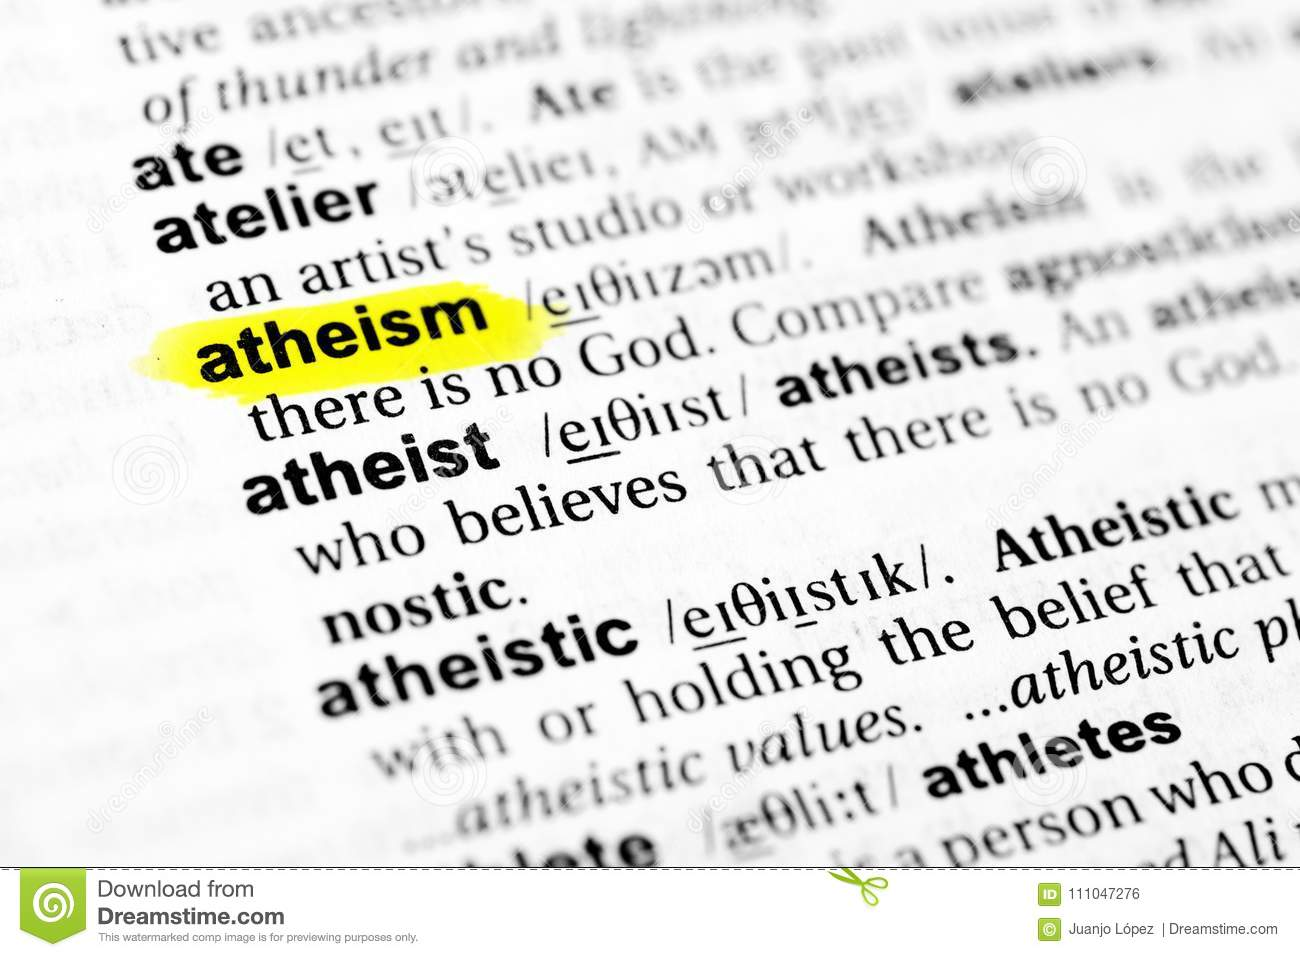 highlighted english word `atheism` and its definition in the